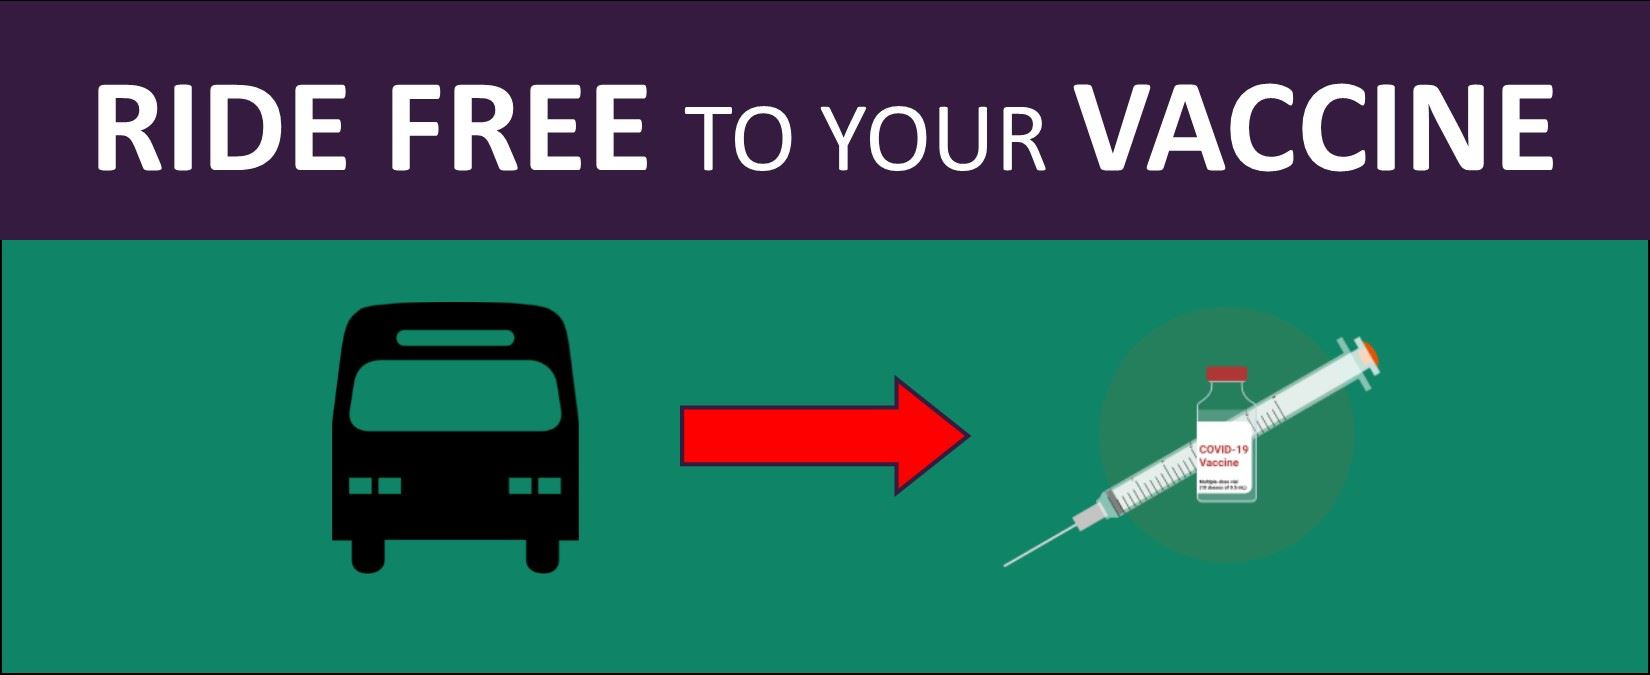 Image banner advertising free fixed route trips for those getting a vaccine in Lodi.